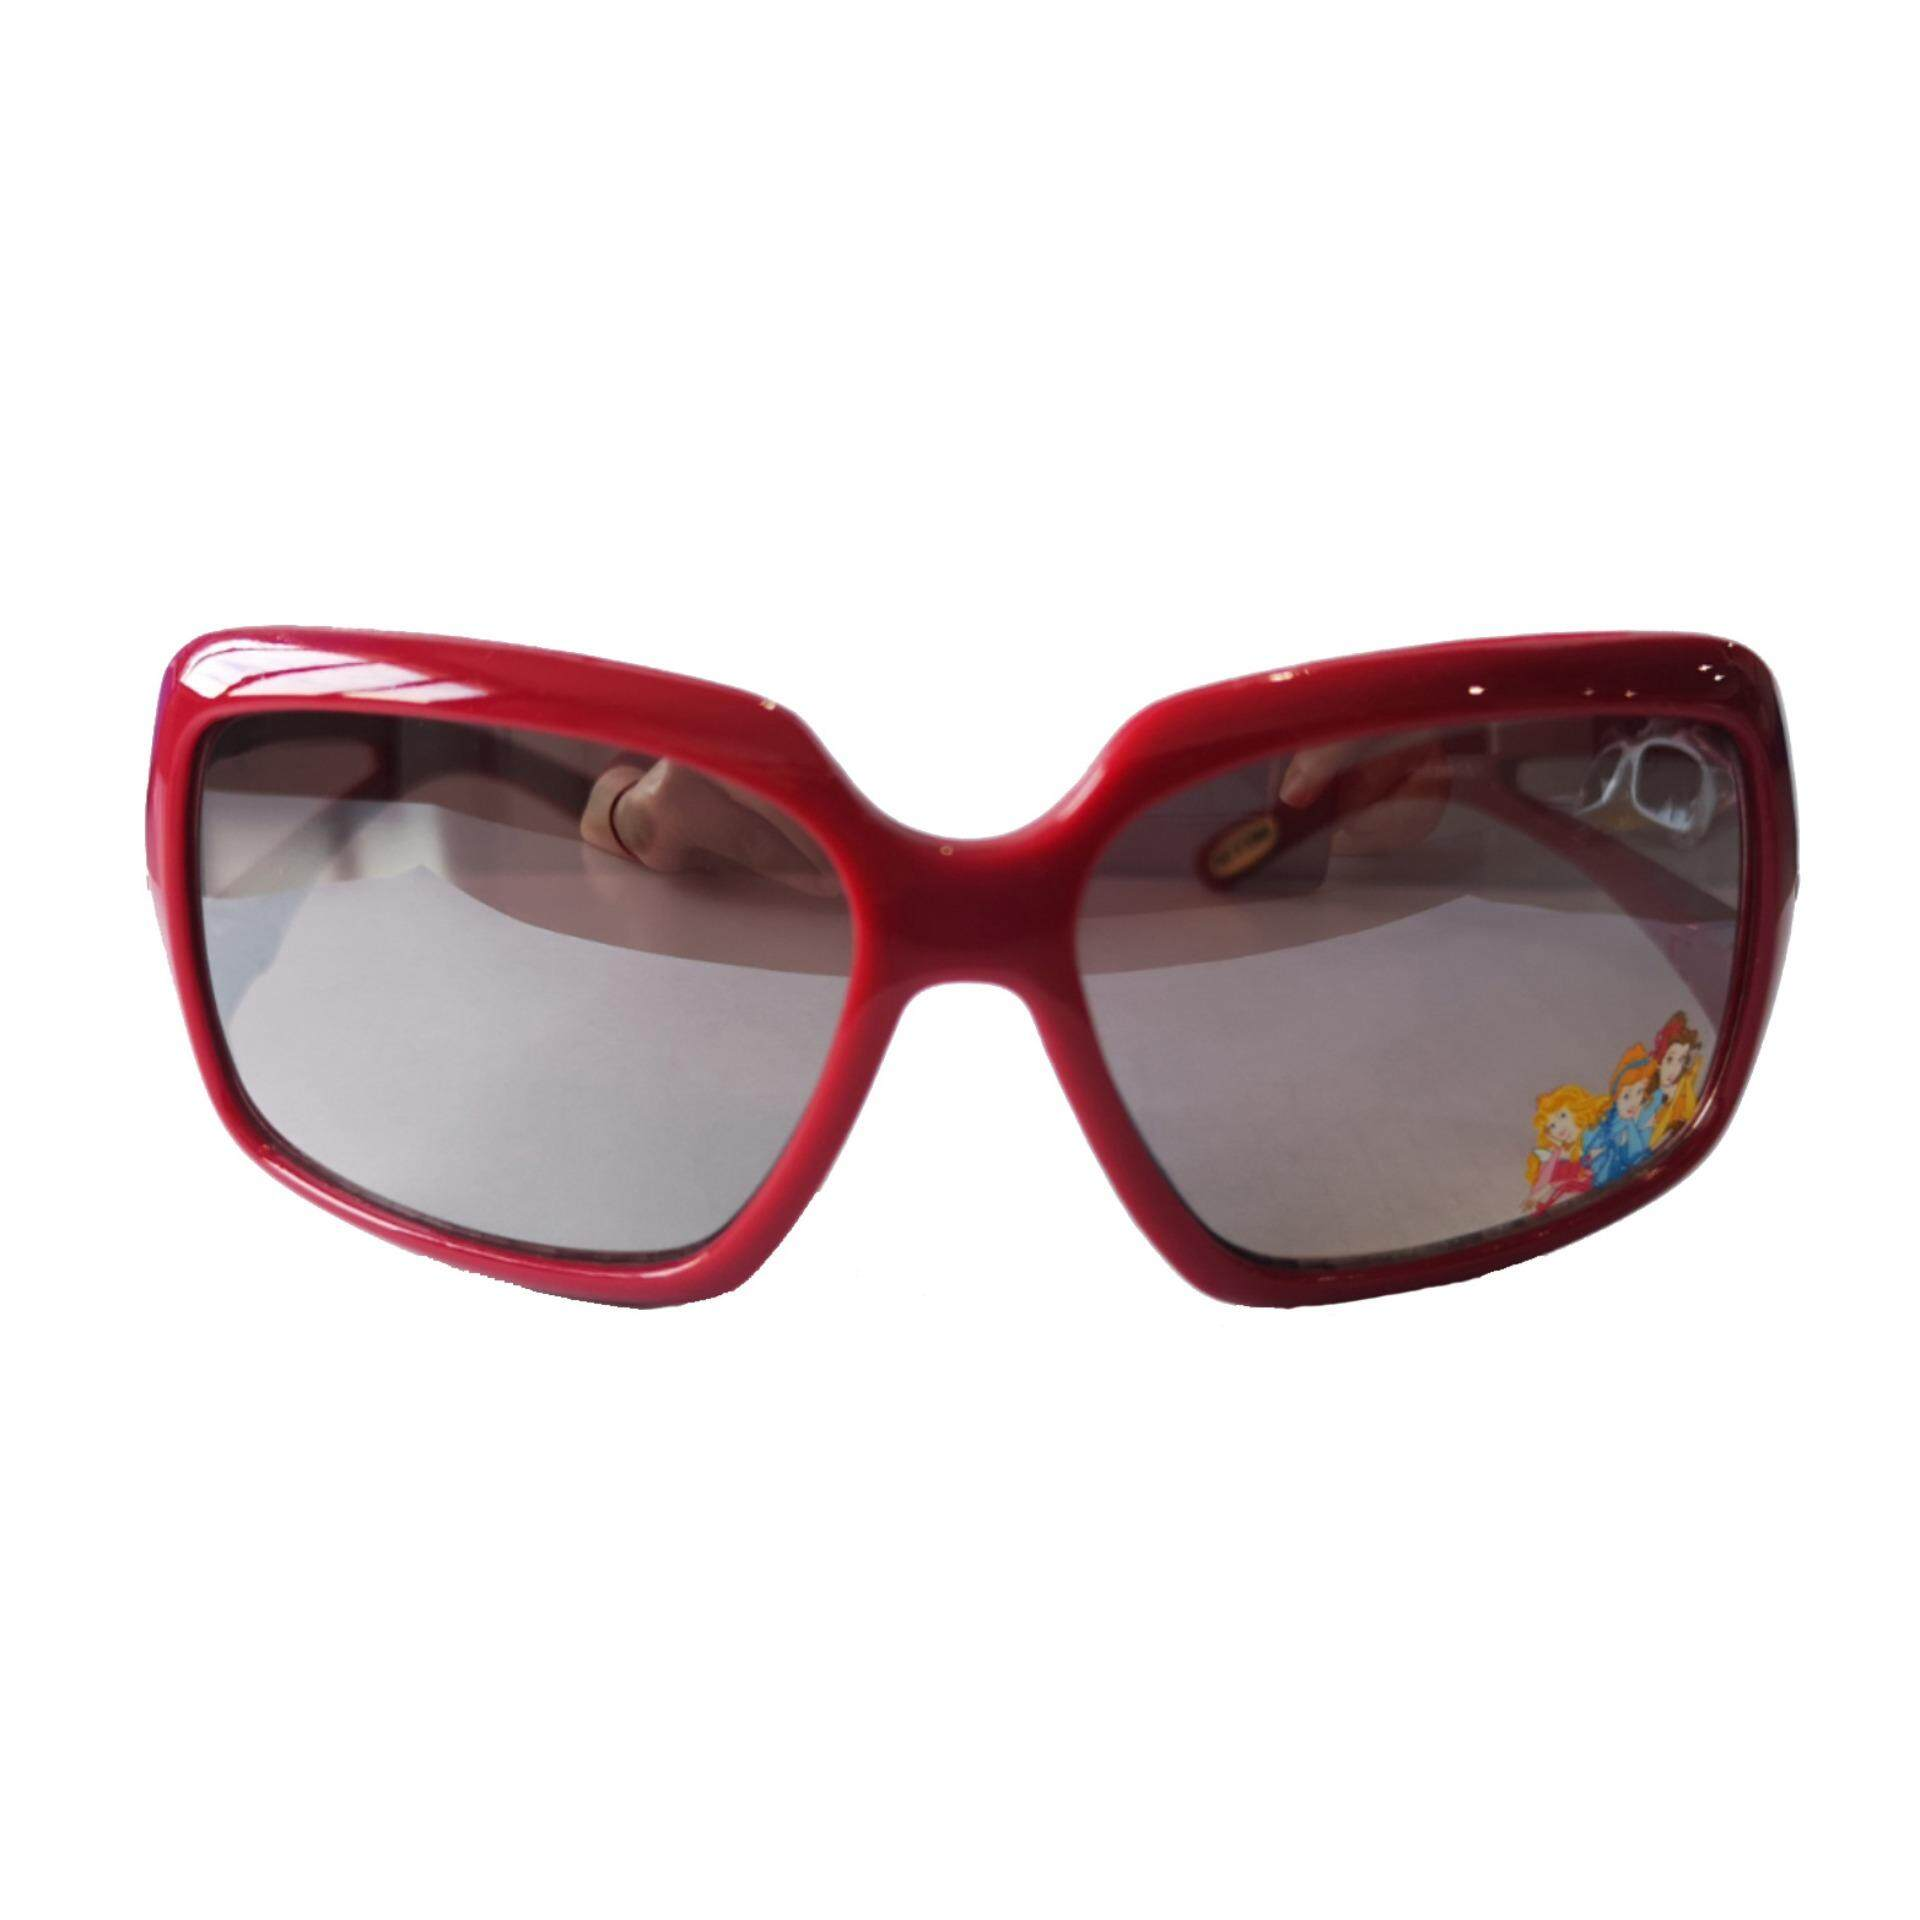 cd1b99e7e85 Disney Princess Girls Square Lens 100% UV Protection Eyewear Outdoor  Sunglasses - Dark Red Colour